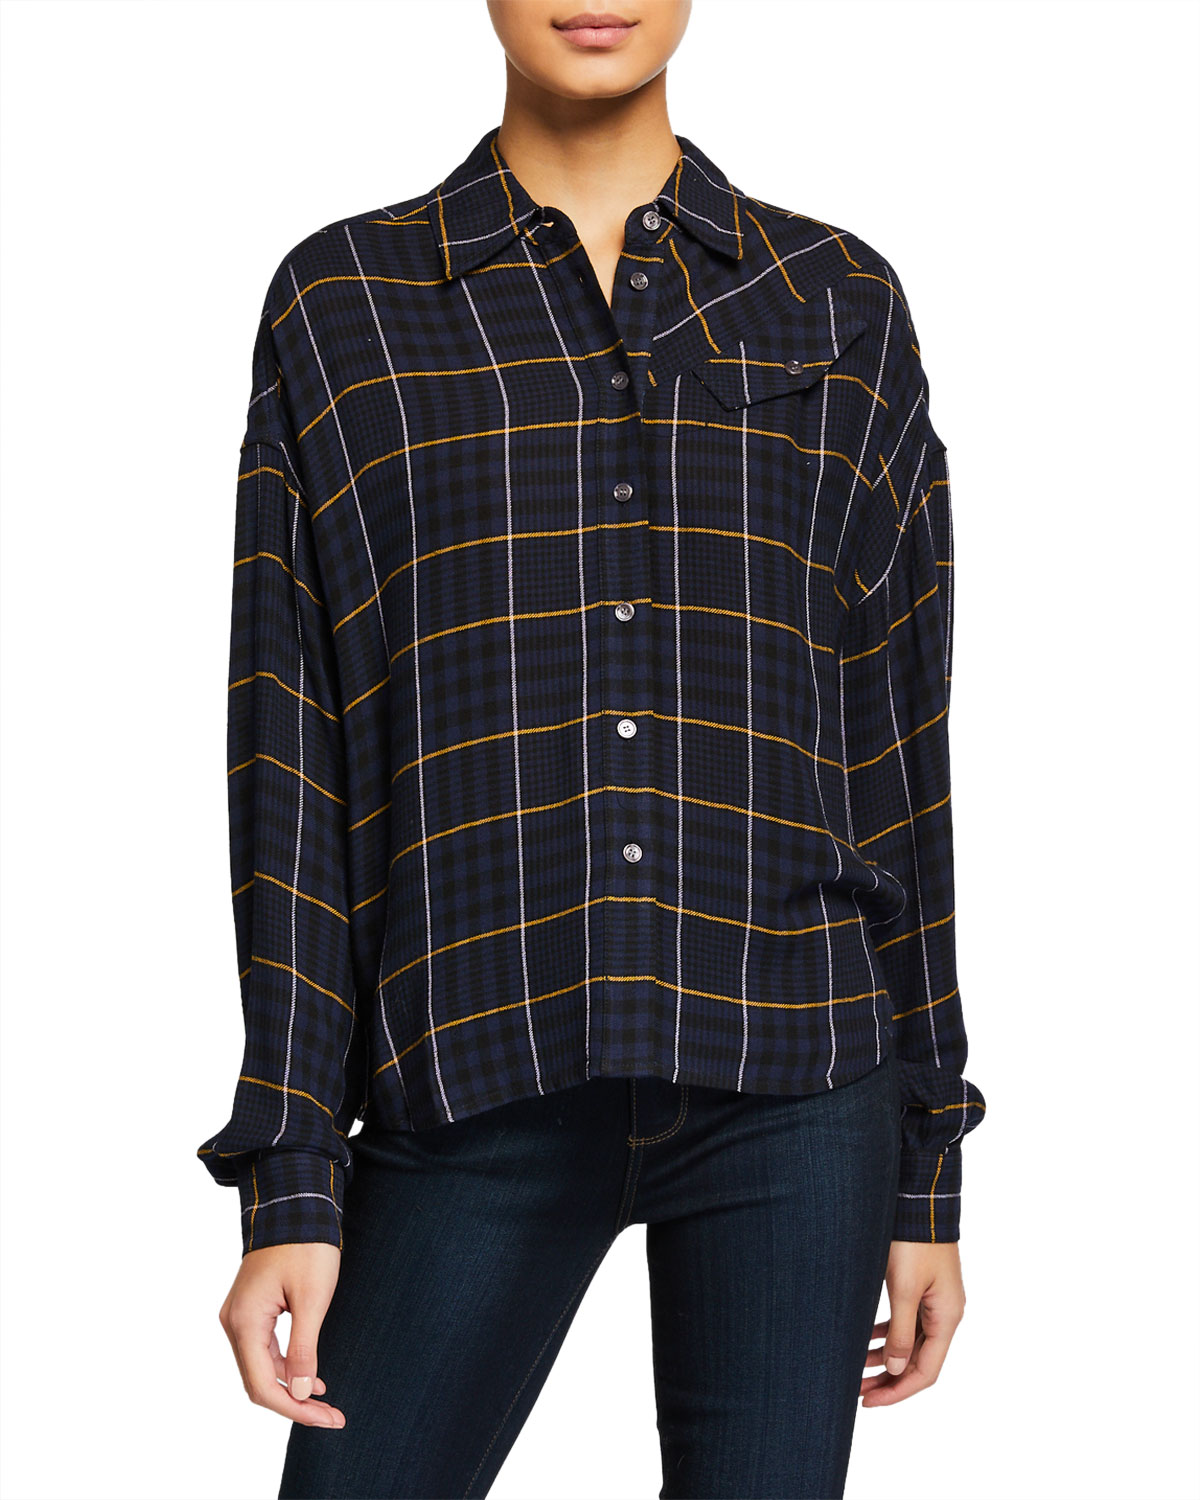 Derek Lam 10 Crosby Plaid Button-Down Long-Sleeve Shirt